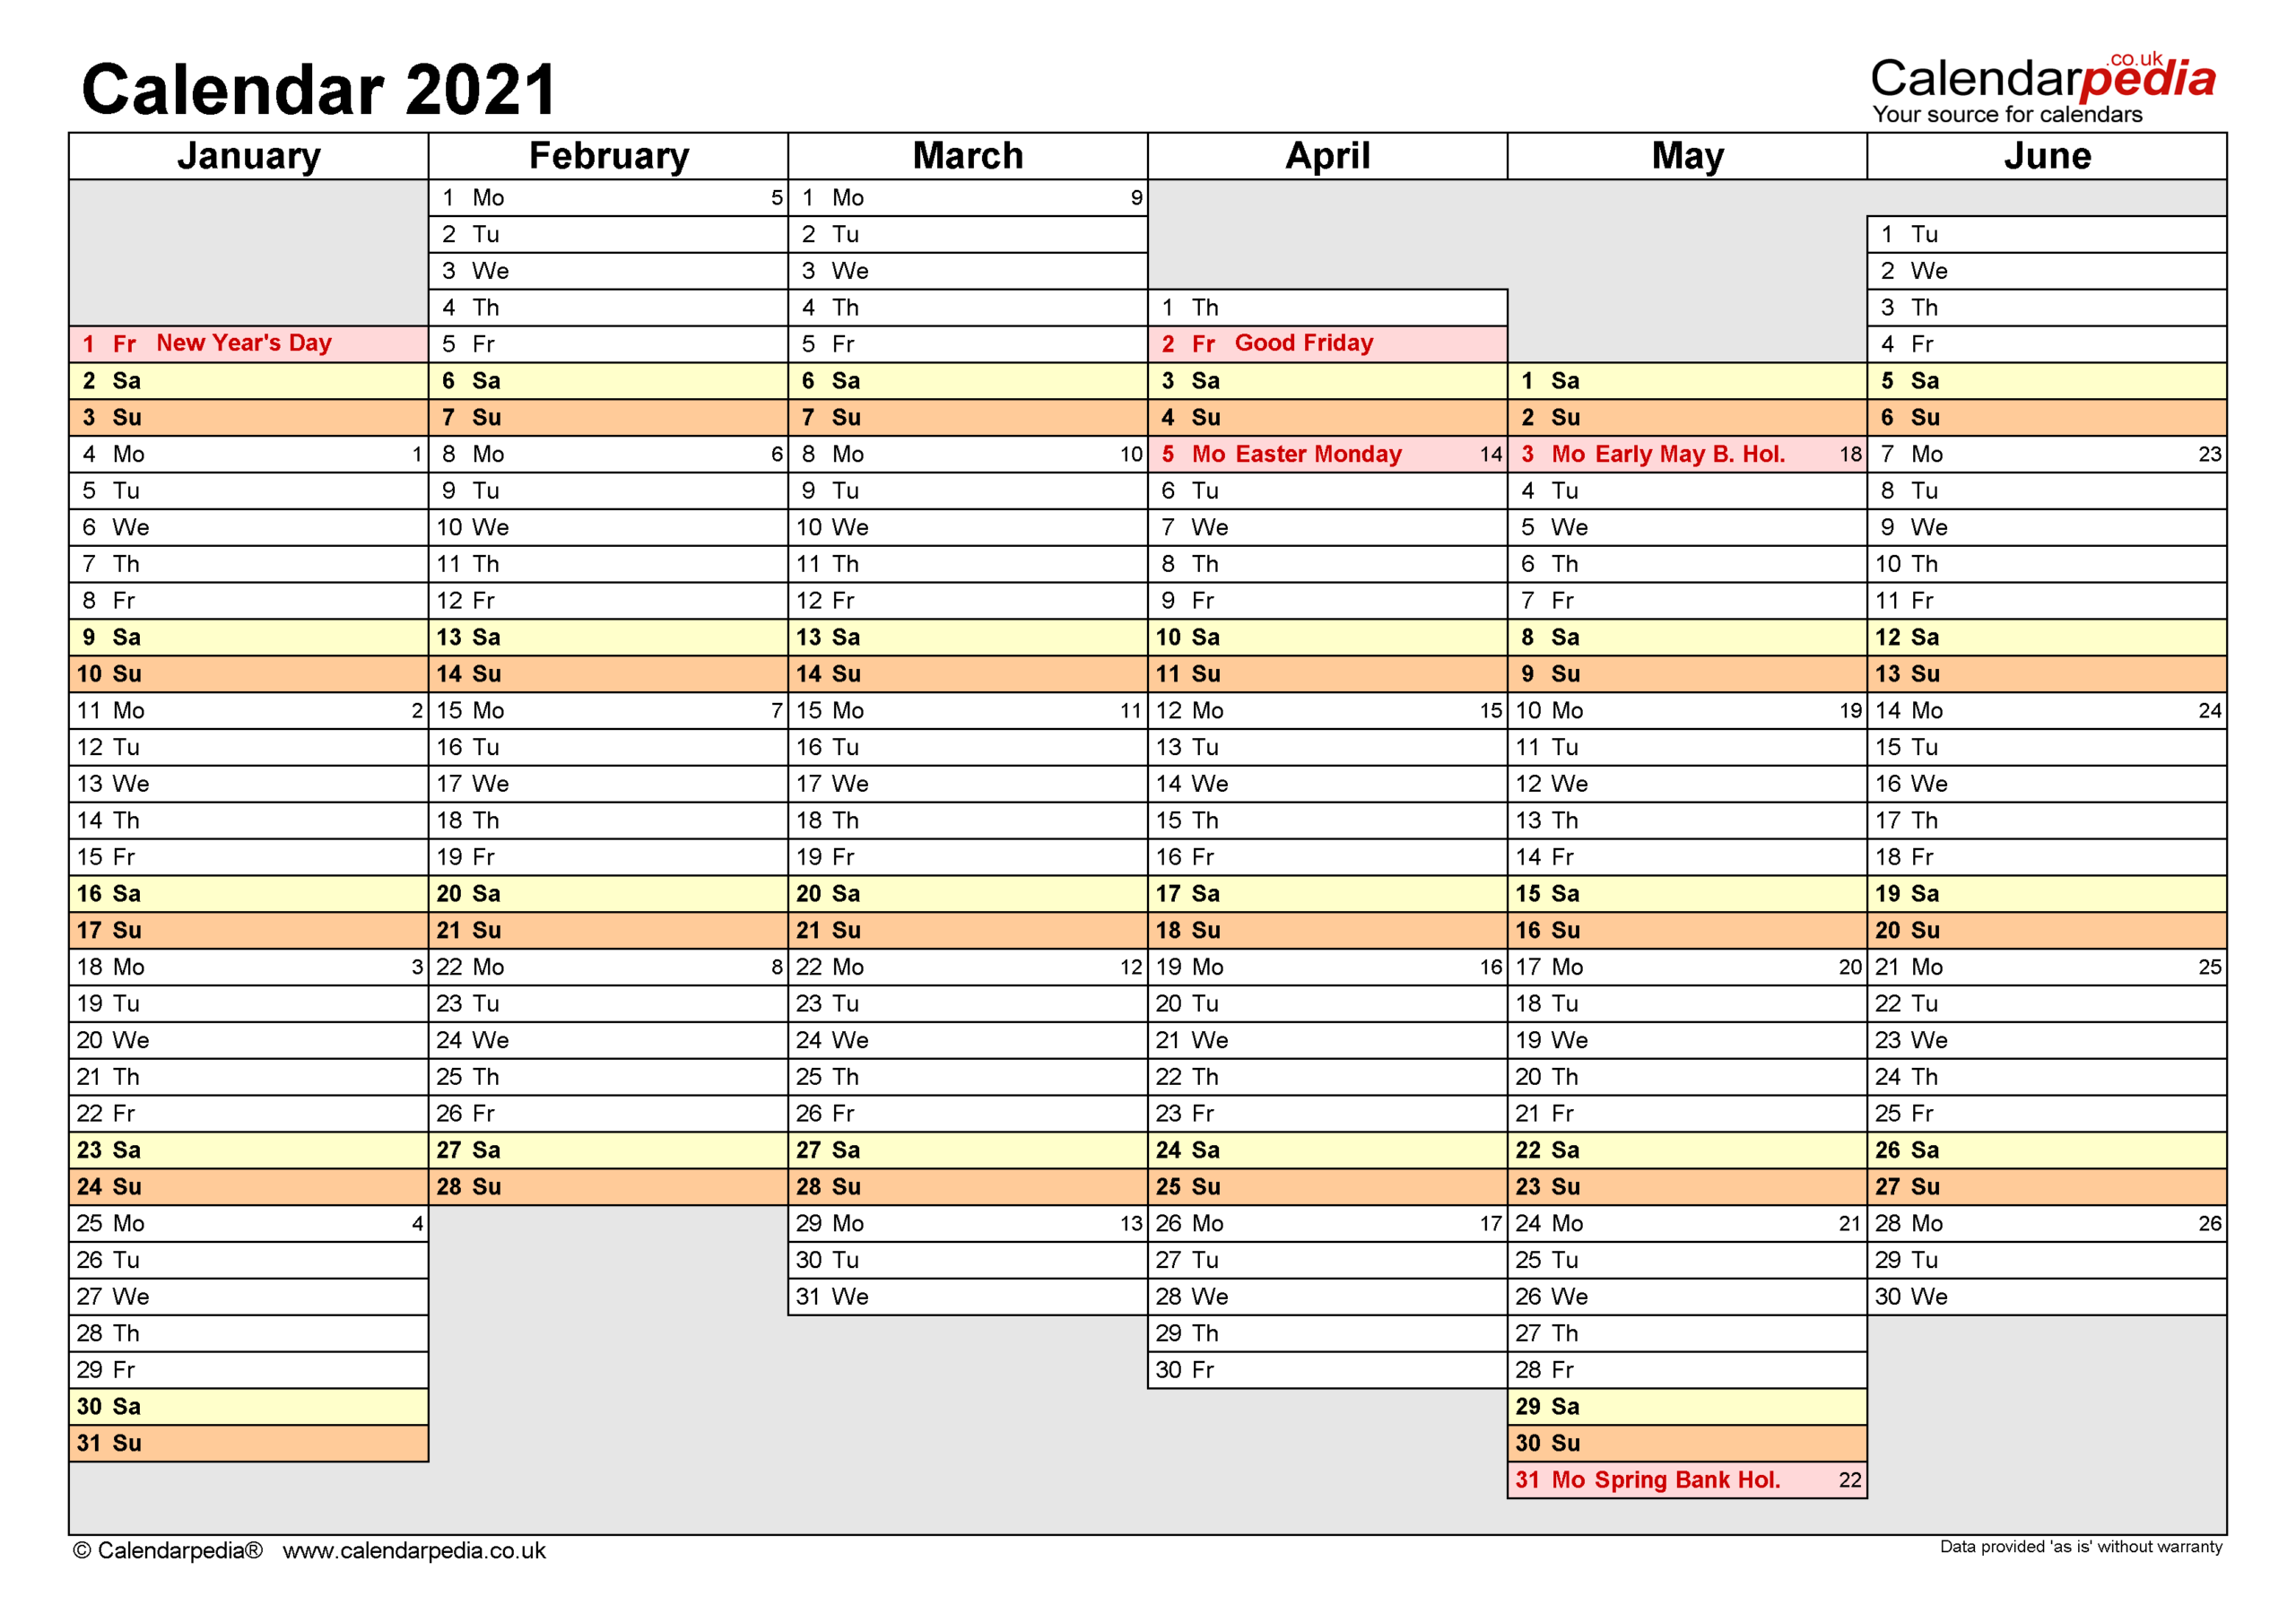 Calendar 2021 (Uk) - Free Printable Pdf Templates for Two Year Planner 2021-2021: Monthly